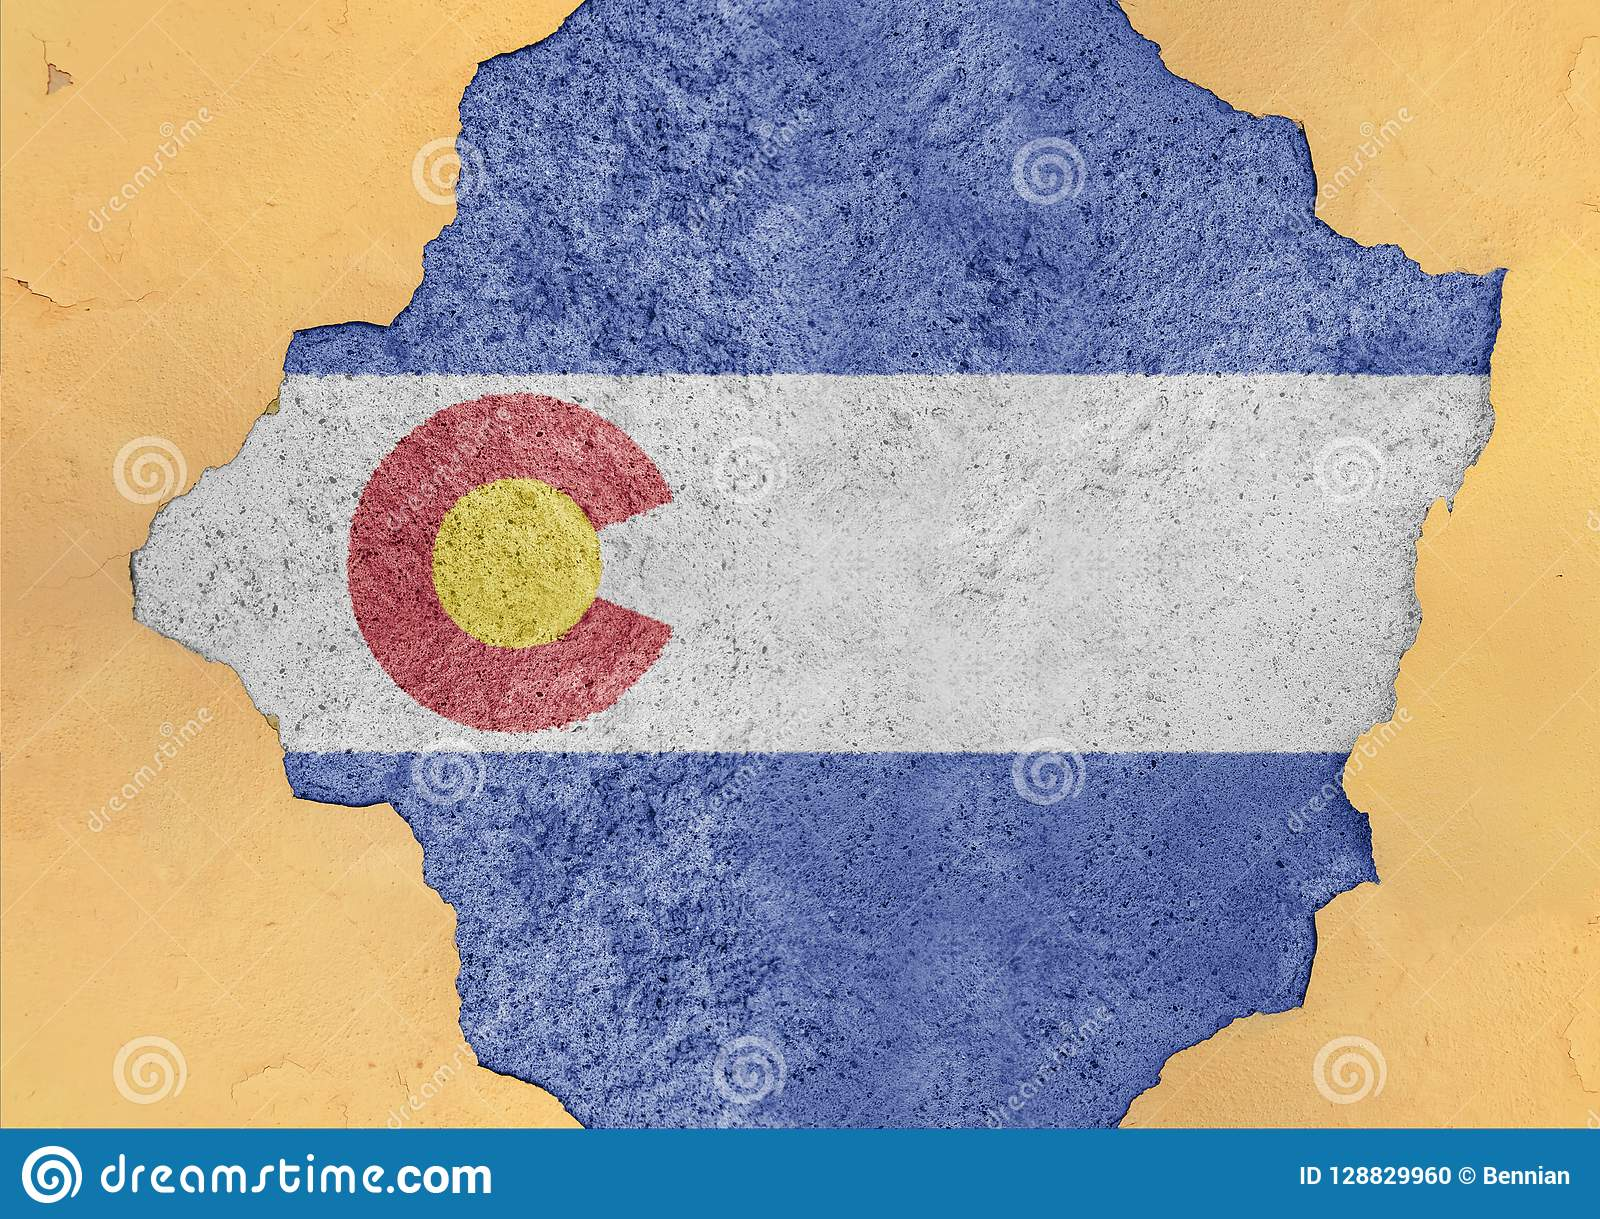 US state Colorado flag painted on concrete hole and cracked wall